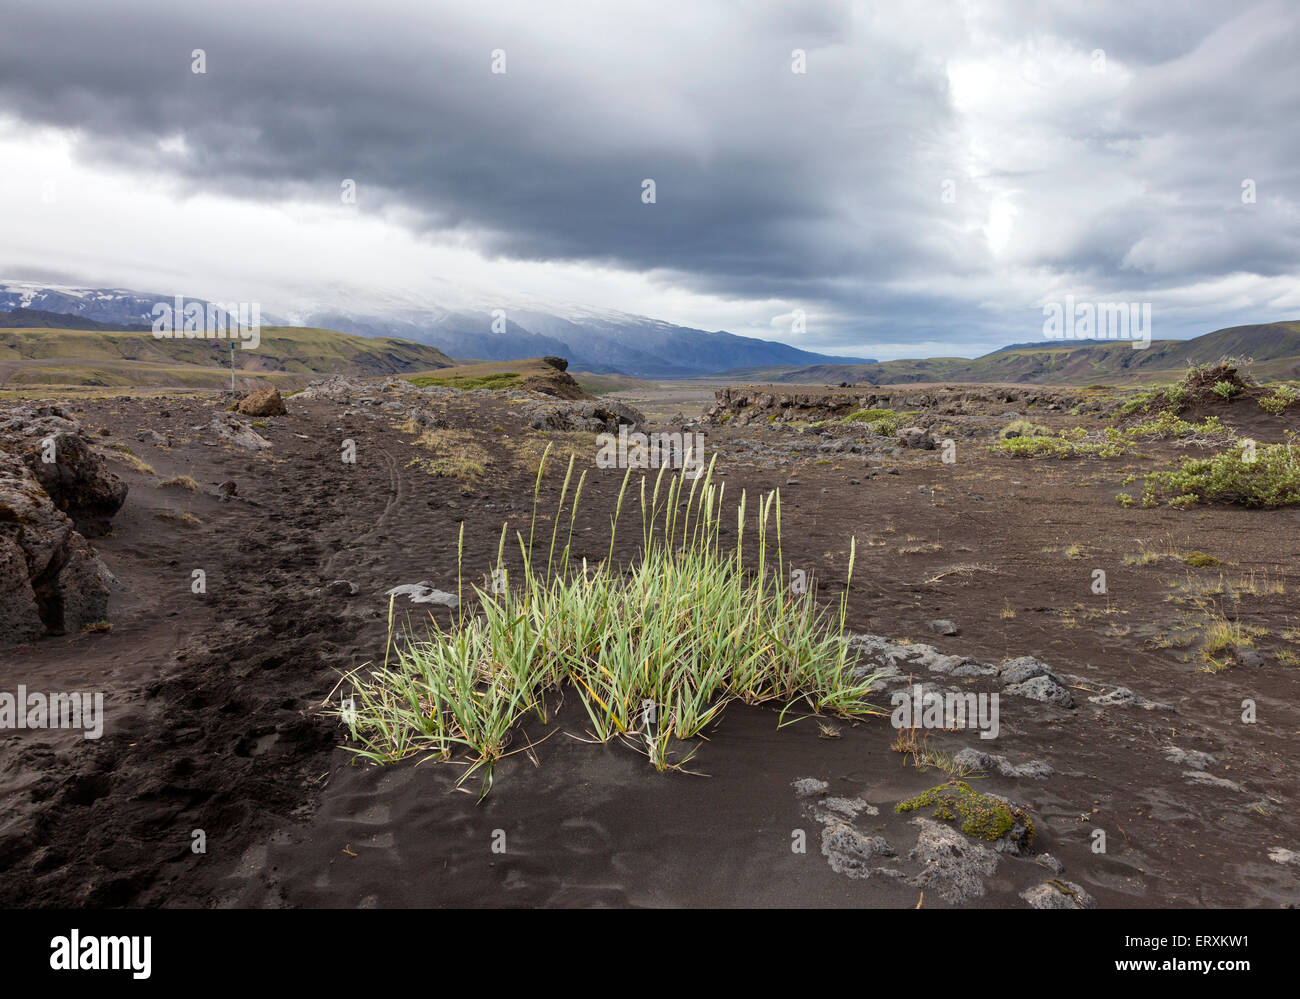 Sparse Vegetation Growing Out of Volcanic Ash With Northern Slopes of the Eyjafjallajokul Volcano in the Background, - Stock Image